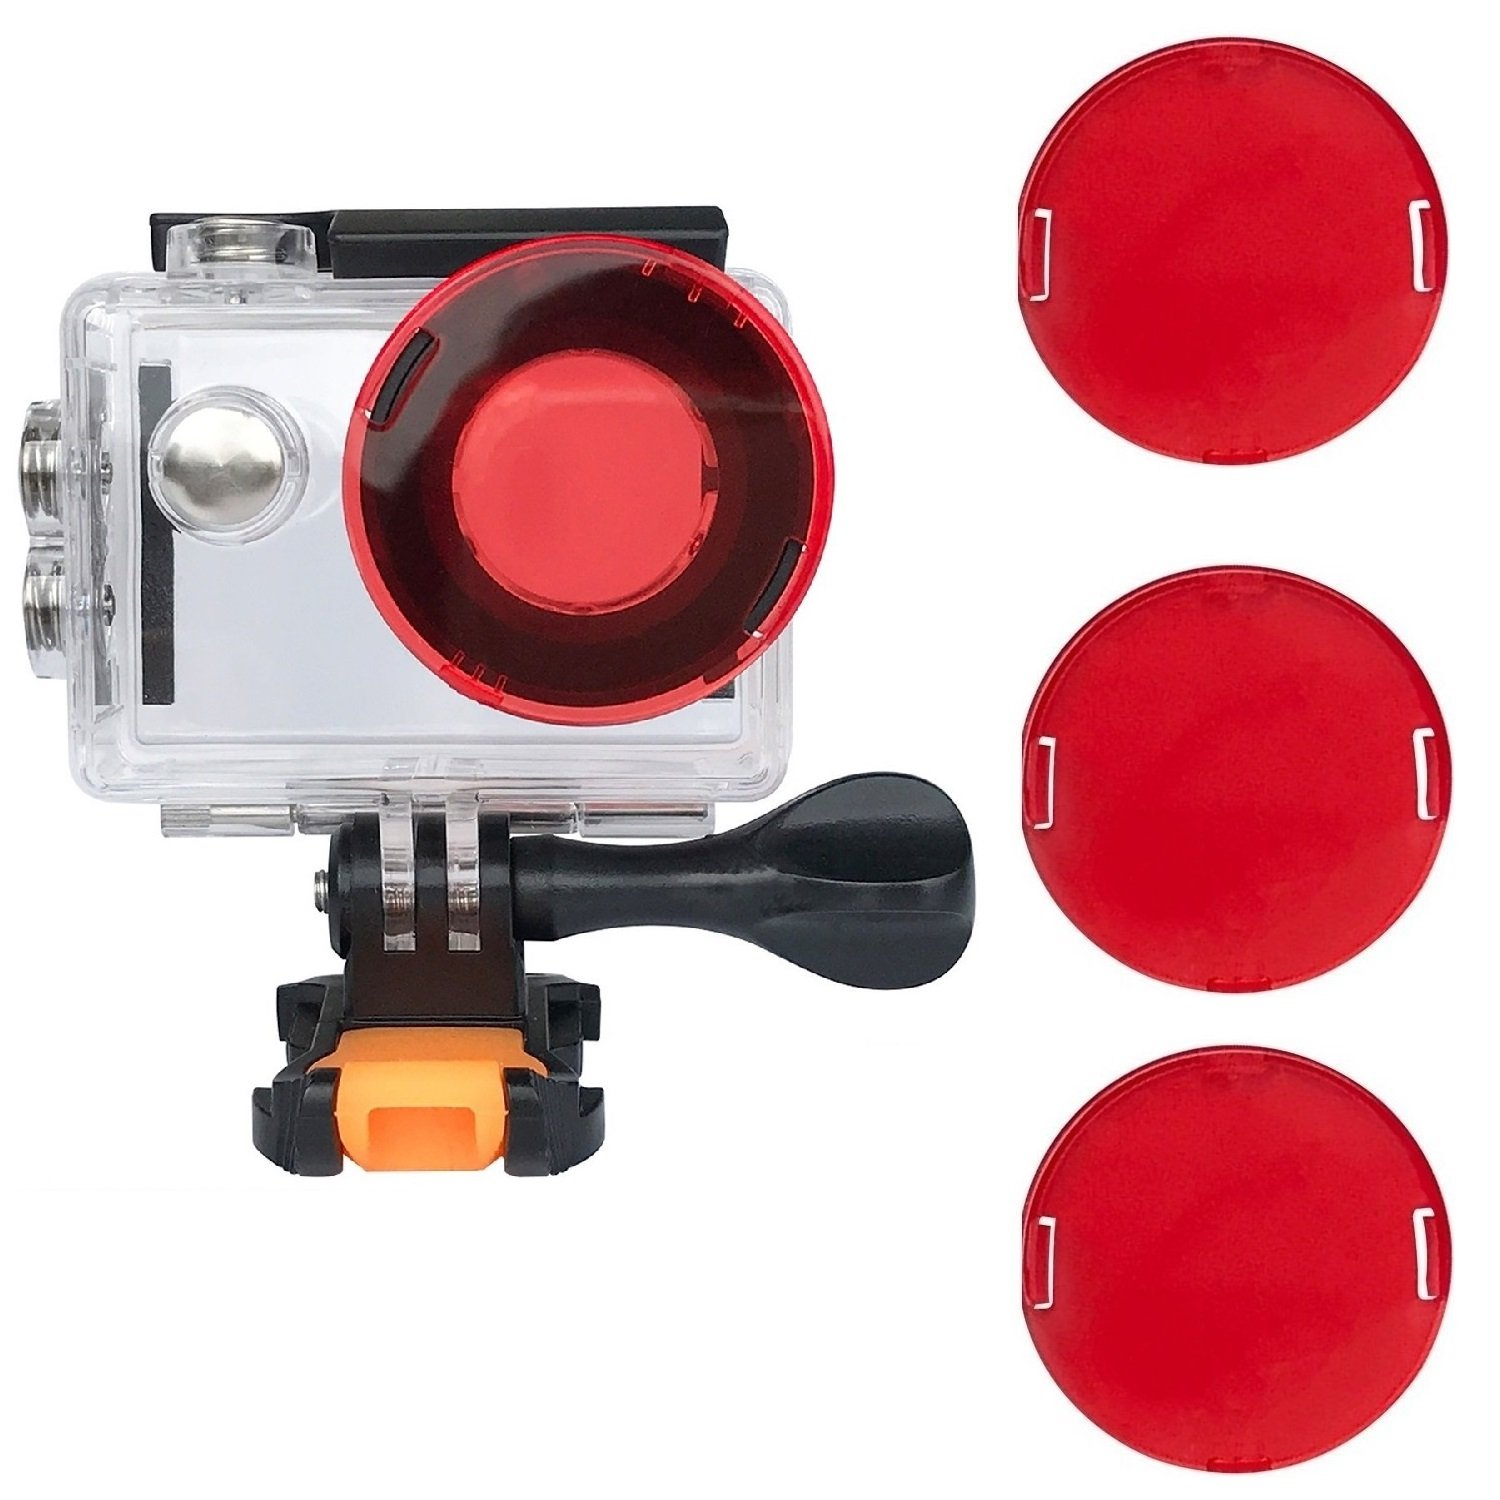 VVHOOY Waterproof Case Dive Housing Protective Underwater Dive Case Shell 3 Pack Red Filter Compatible AKASO EK7000/EKEN H9R/FITFORT/DROGRACE WP350 Action Camera by VVHOOY